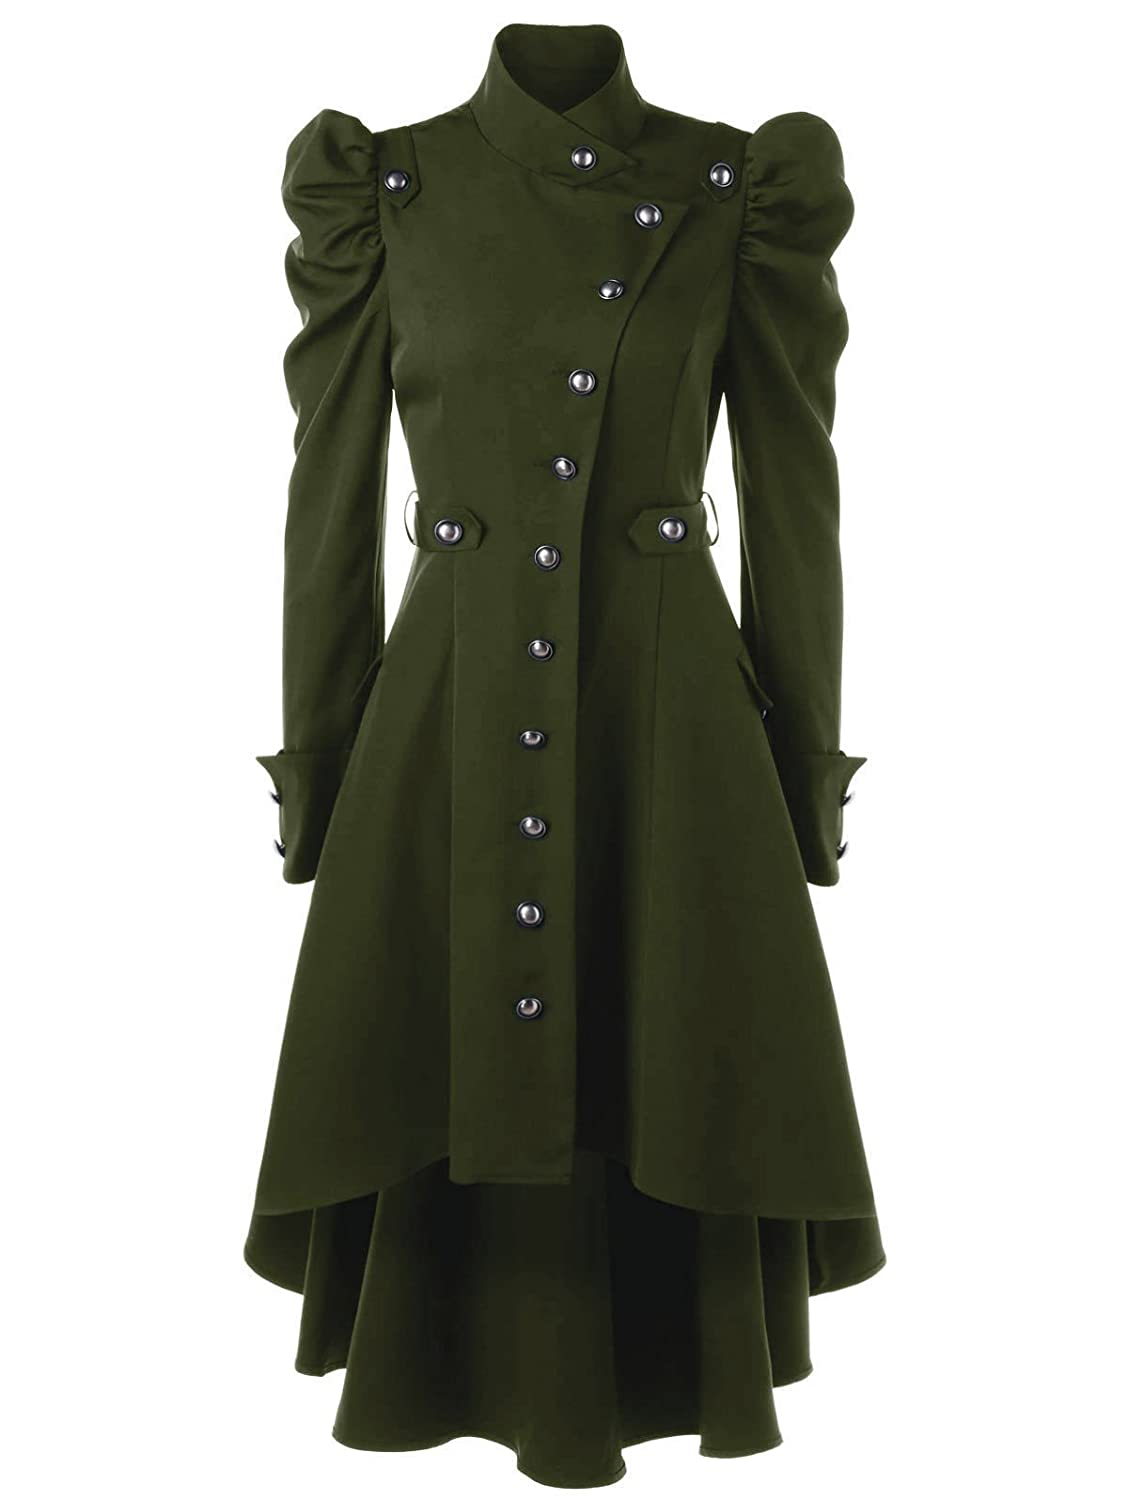 Vintage Coats & Jackets | Retro Coats and Jackets Beebeauty Gothic Vintage Womens Steampunk Victorian Swallow Tail Long Trench Coat Jacket $36.99 AT vintagedancer.com